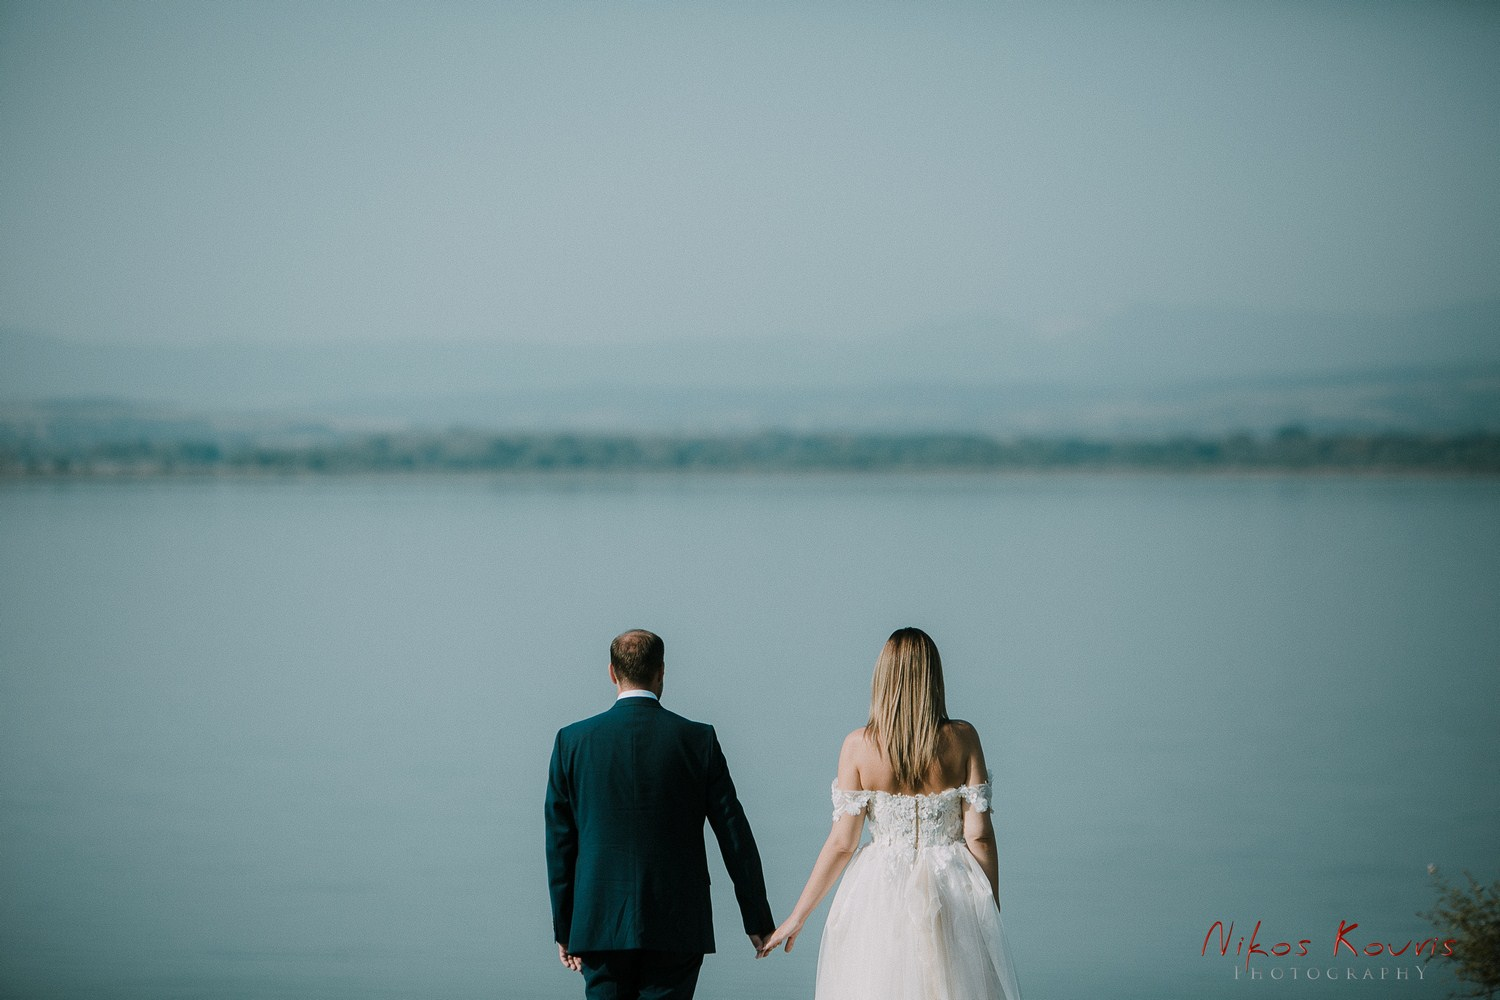 George & Konstantina's wedding story..!